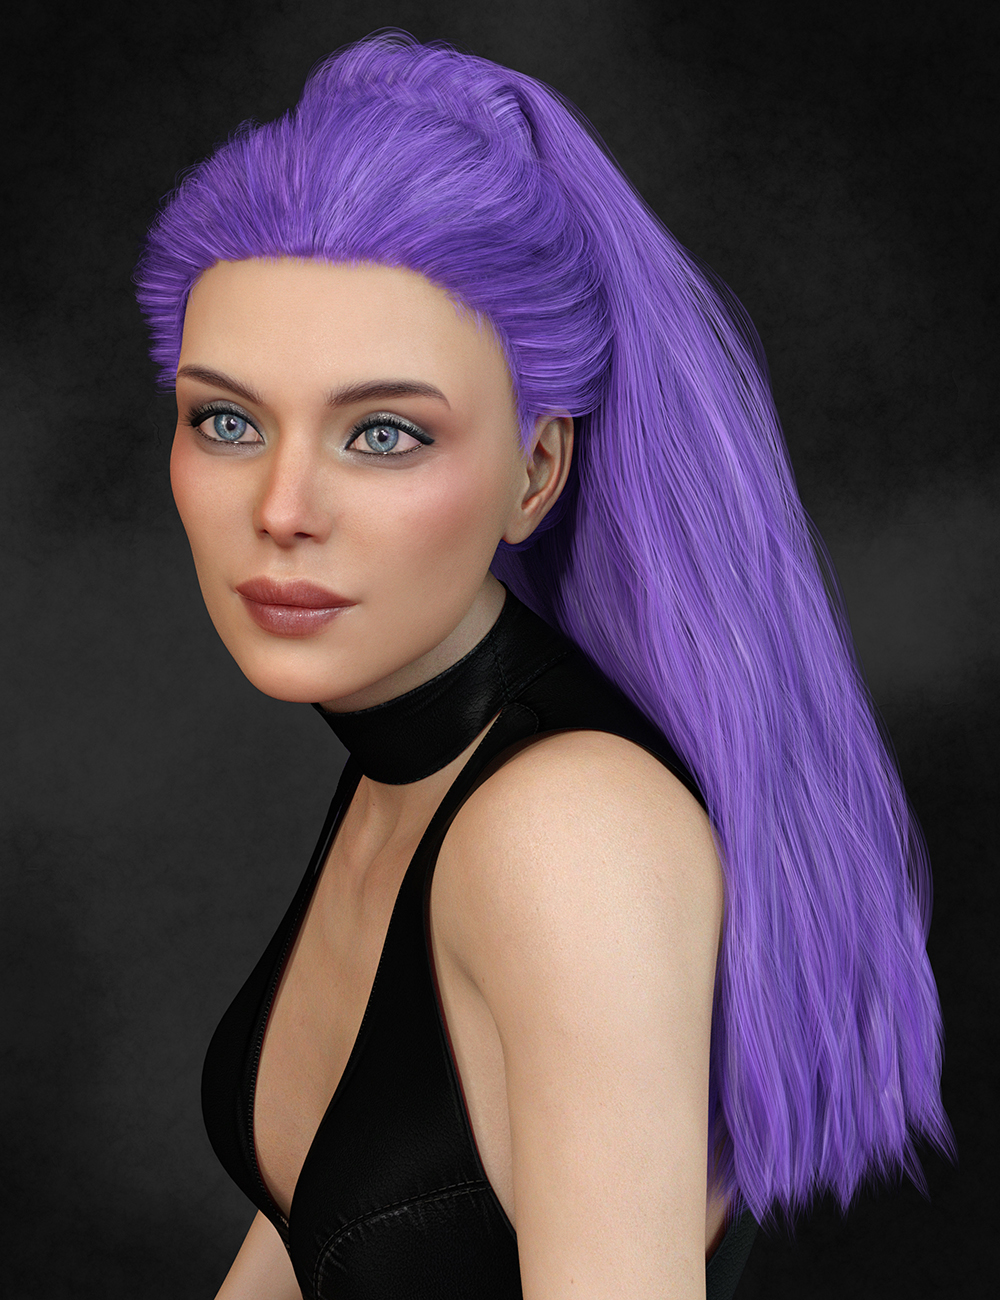 Texture Expansion for Biscuits Noa Hair by: Biscuits, 3D Models by Daz 3D